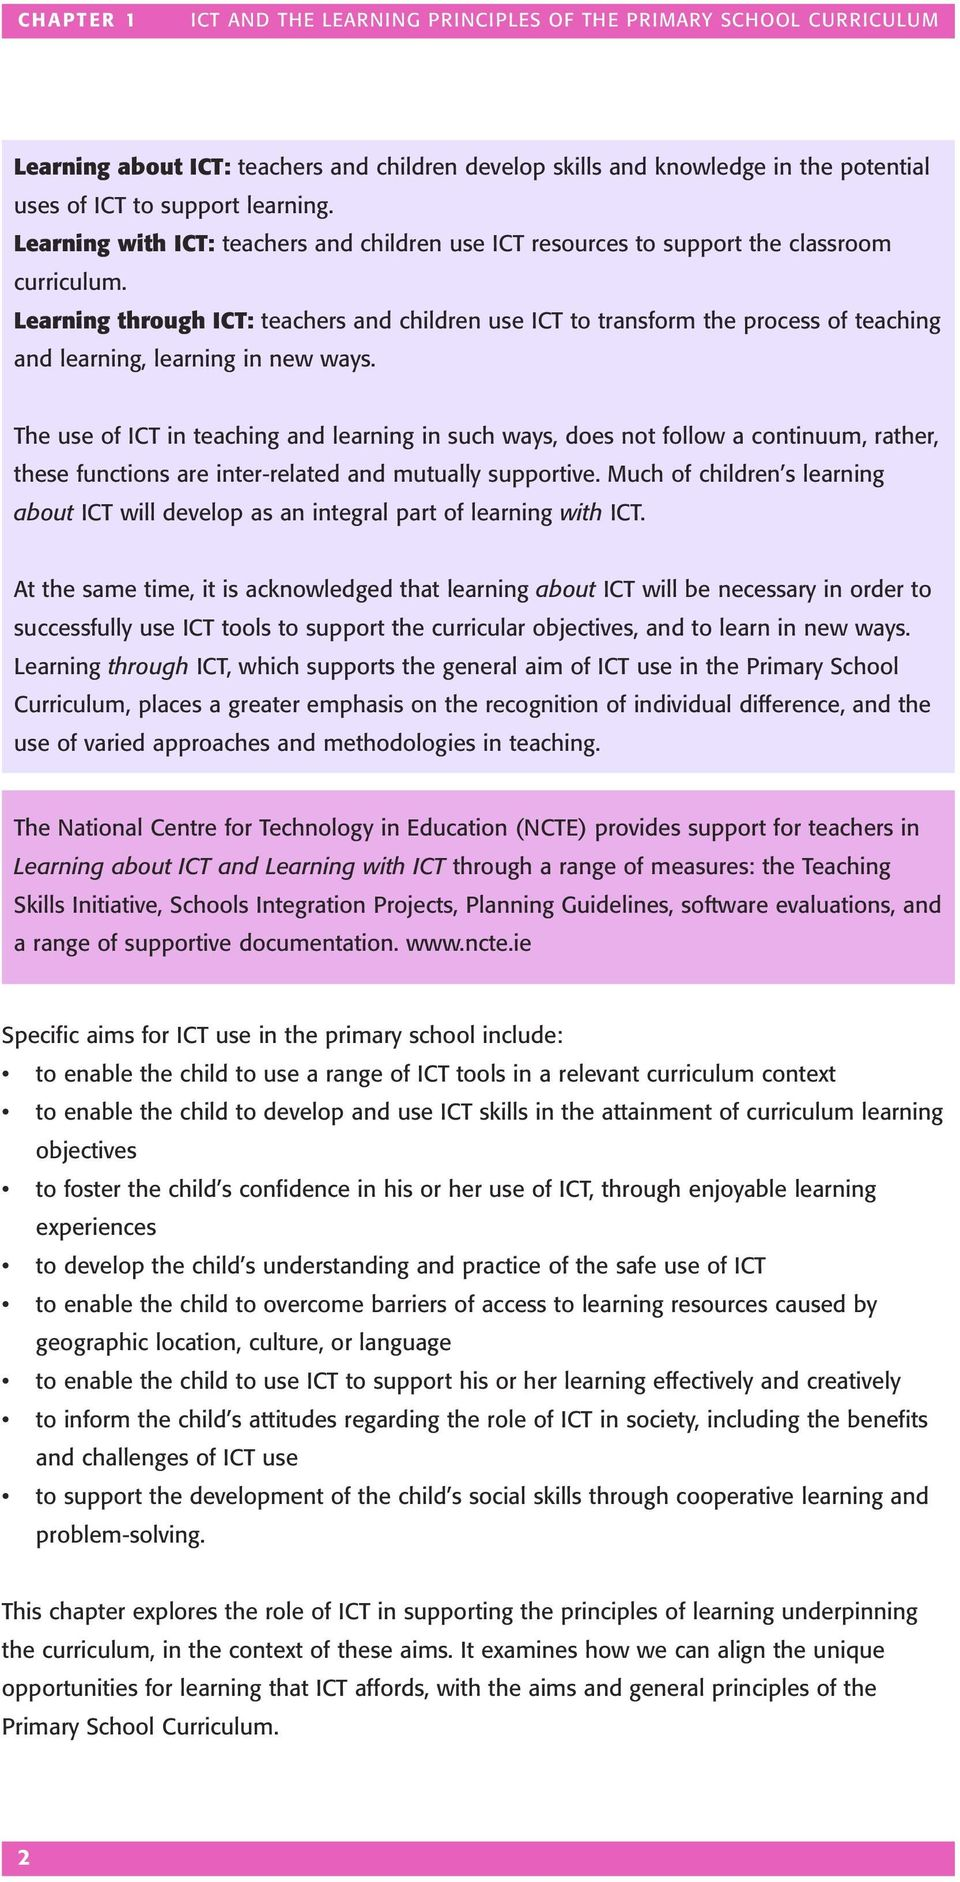 Learning through ICT: teachers and children use ICT to transform the process of teaching and learning, learning in new ways.